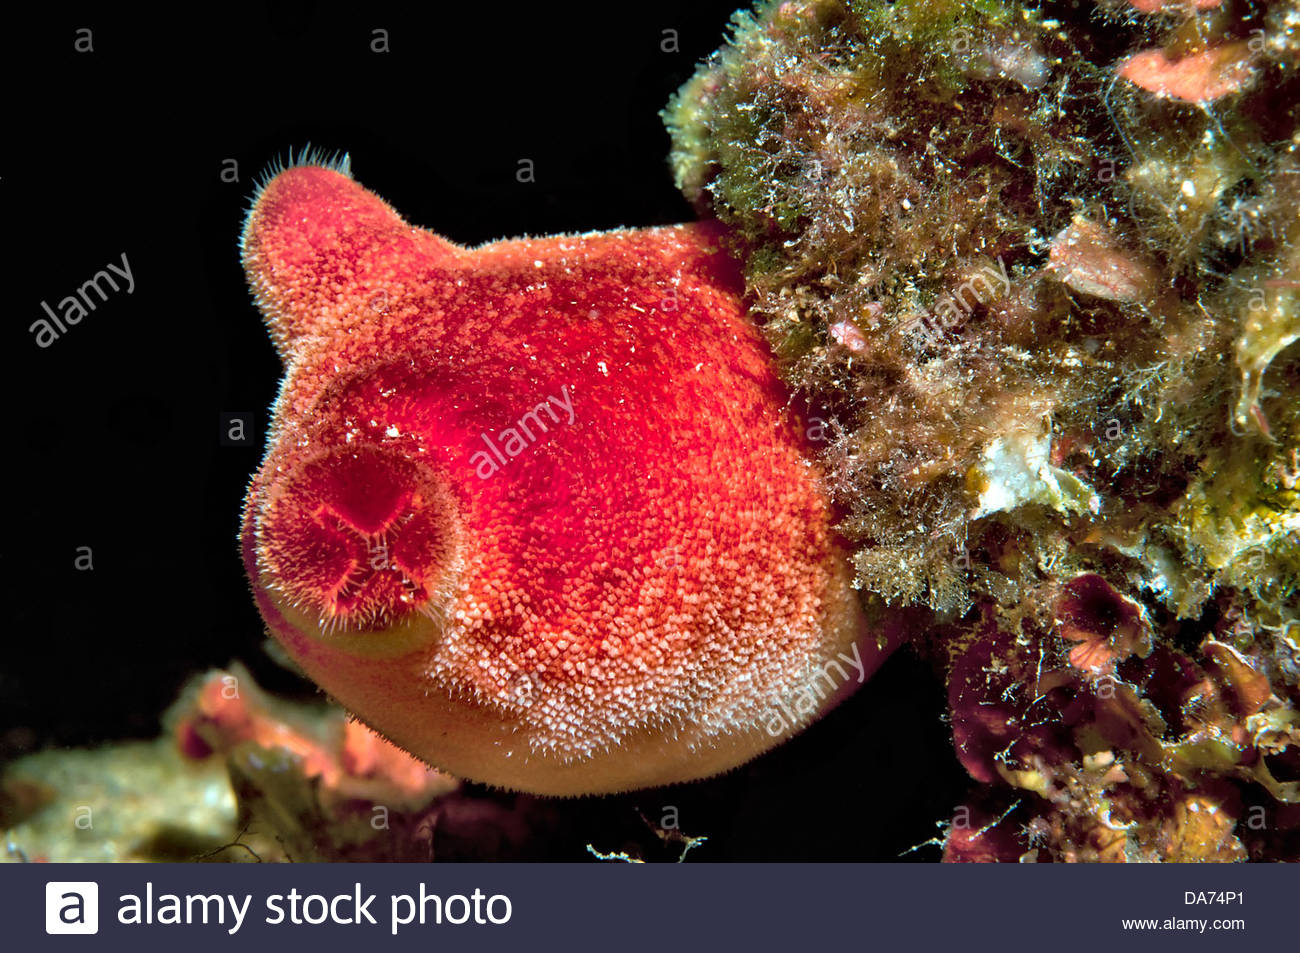 red sea squirt,halocynthia papillosa - Stock Image